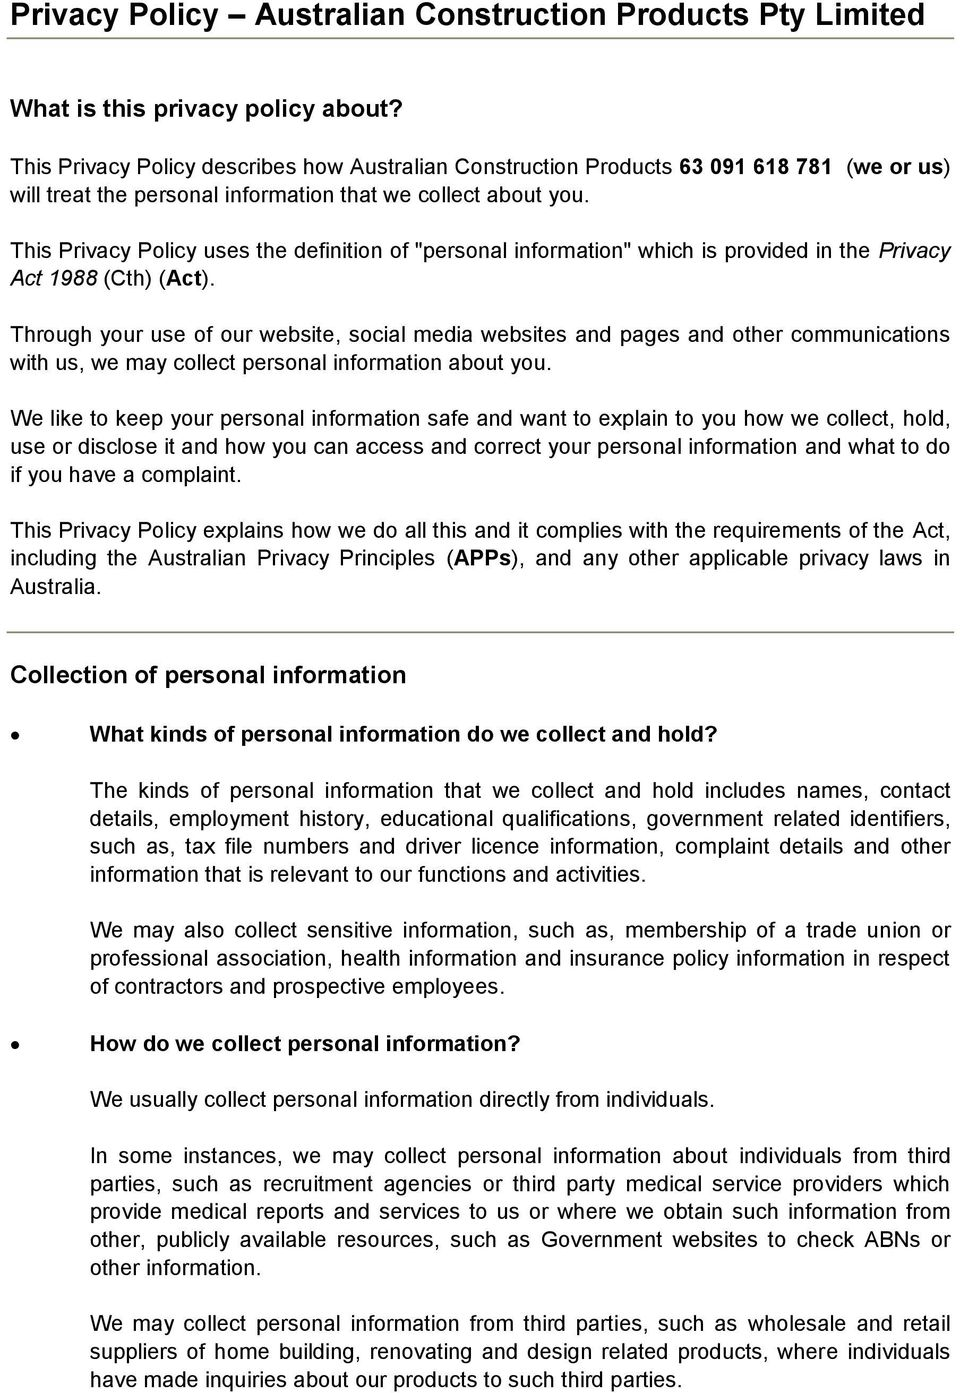 "This Privacy Policy uses the definition of ""personal information"" which is provided in the Privacy Act 1988 (Cth) (Act)."